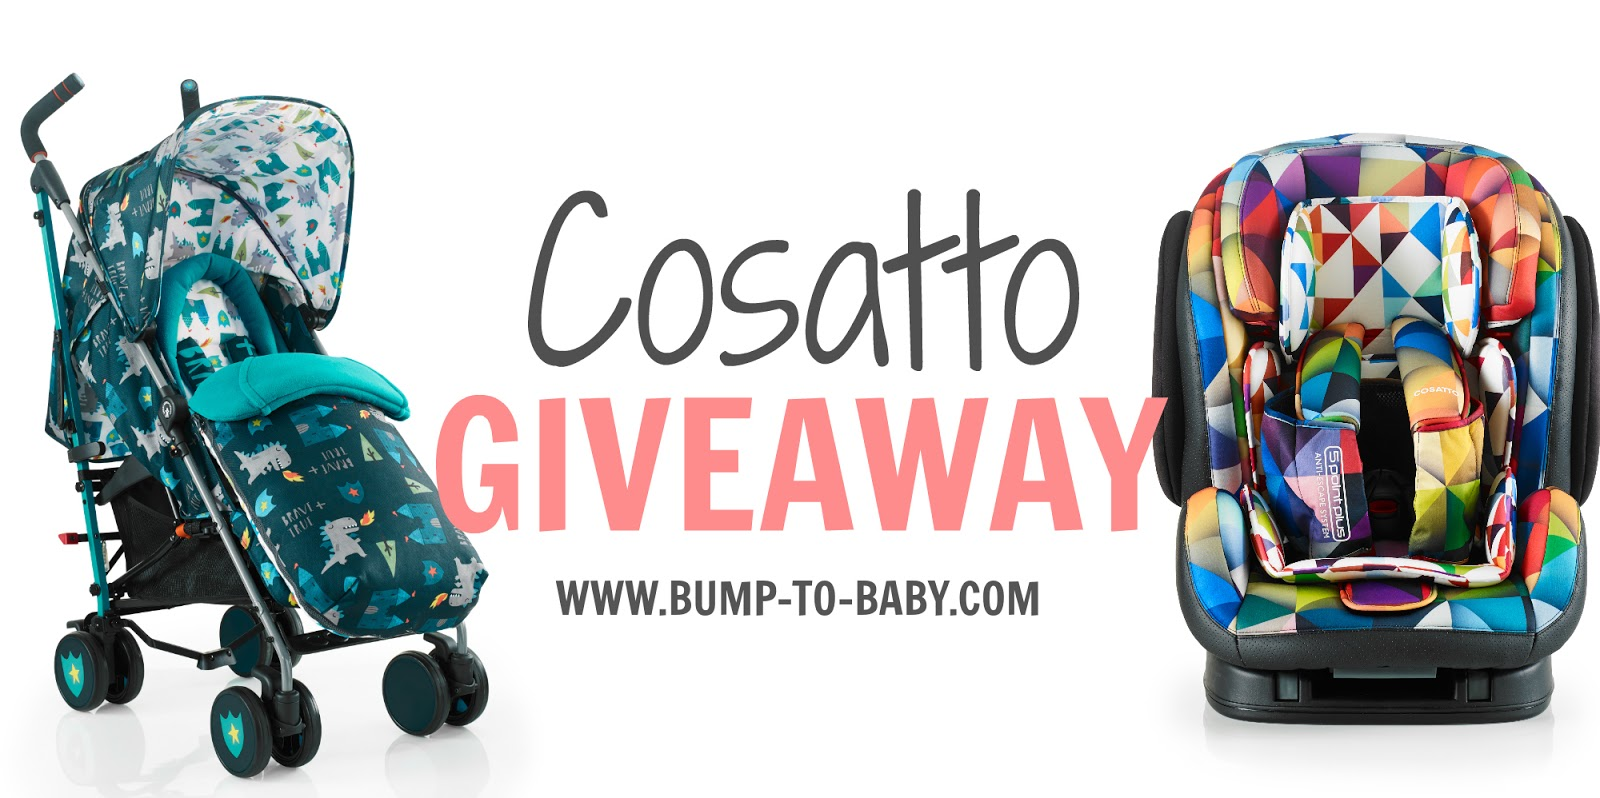 pram giveaway, car seat giveaway, cosatto giveaway,